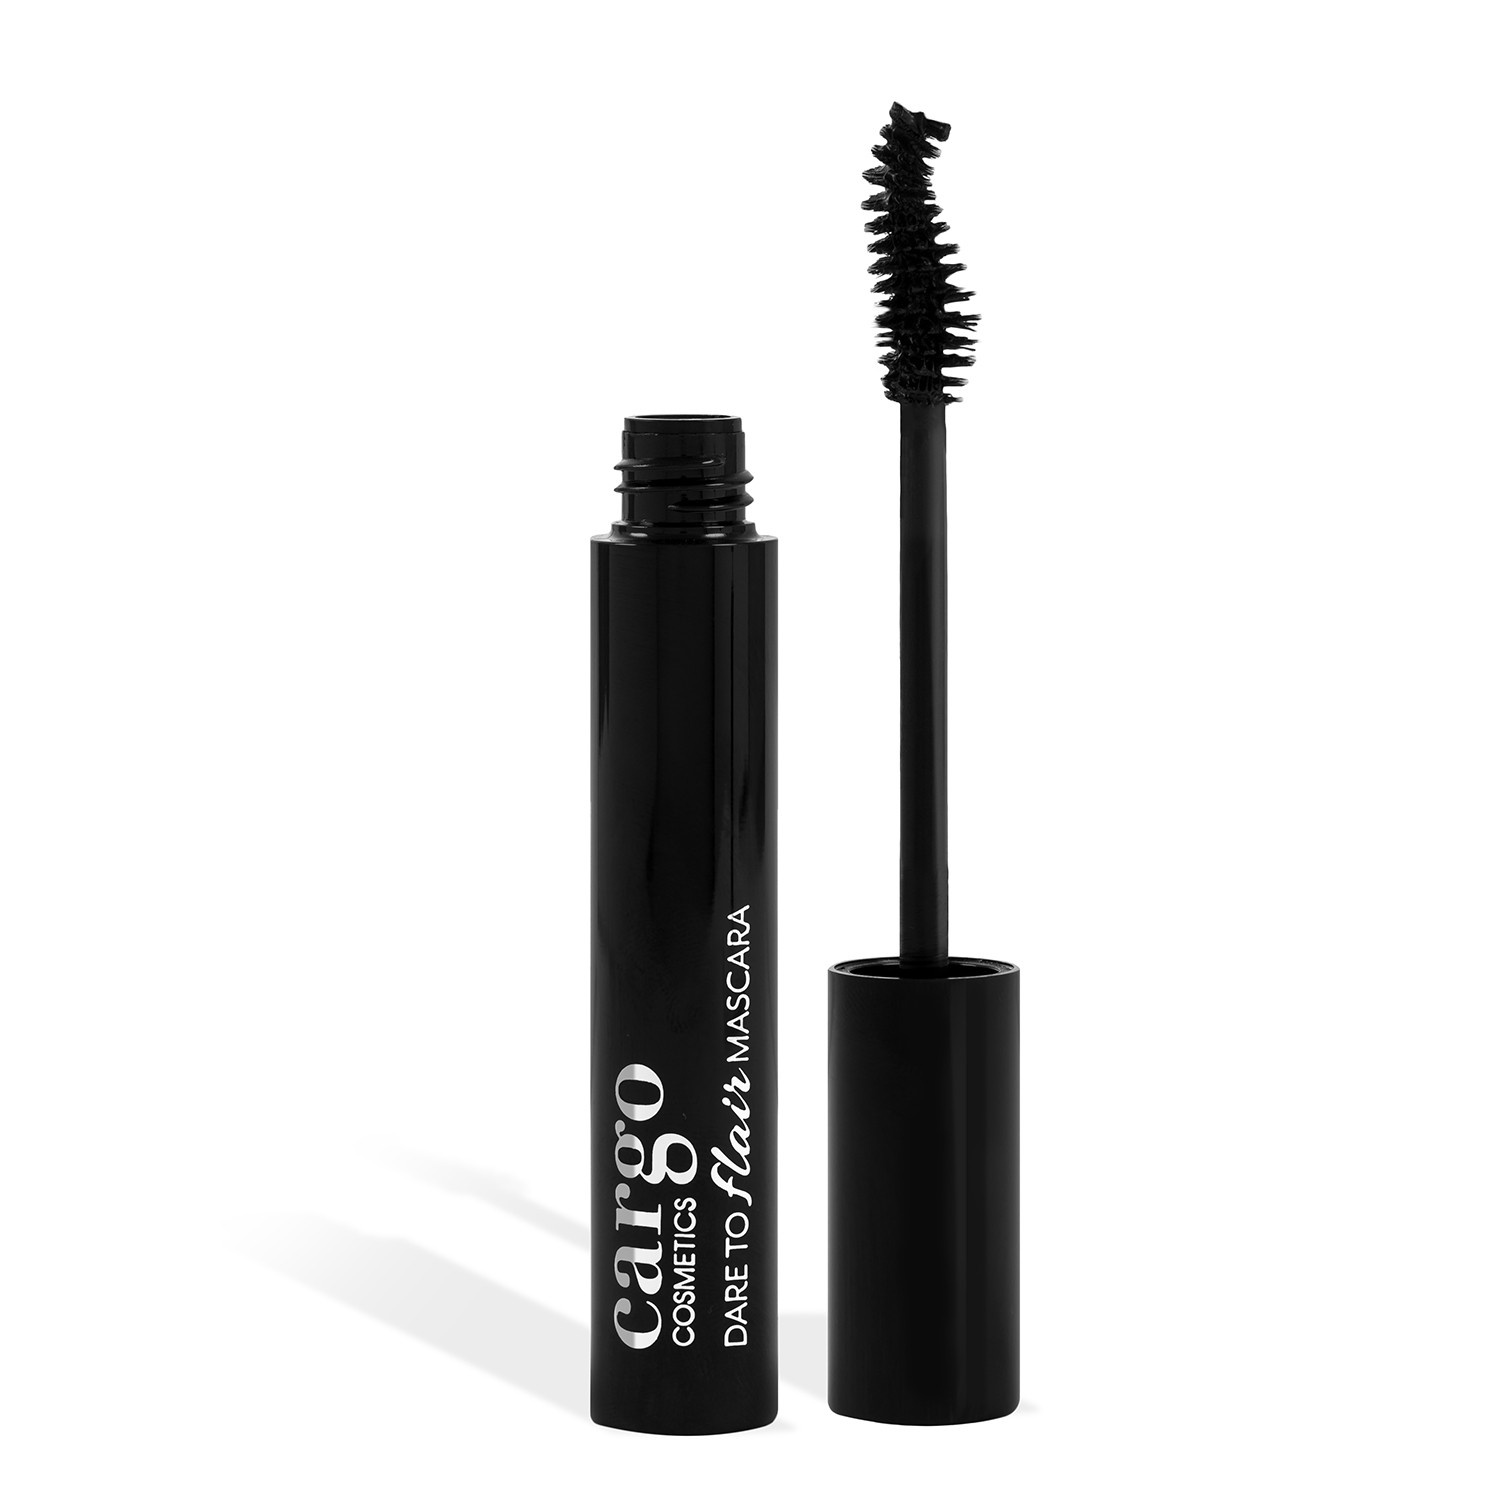 Тушь для ресниц CARGO Cosmetics Dare To Flair mascara